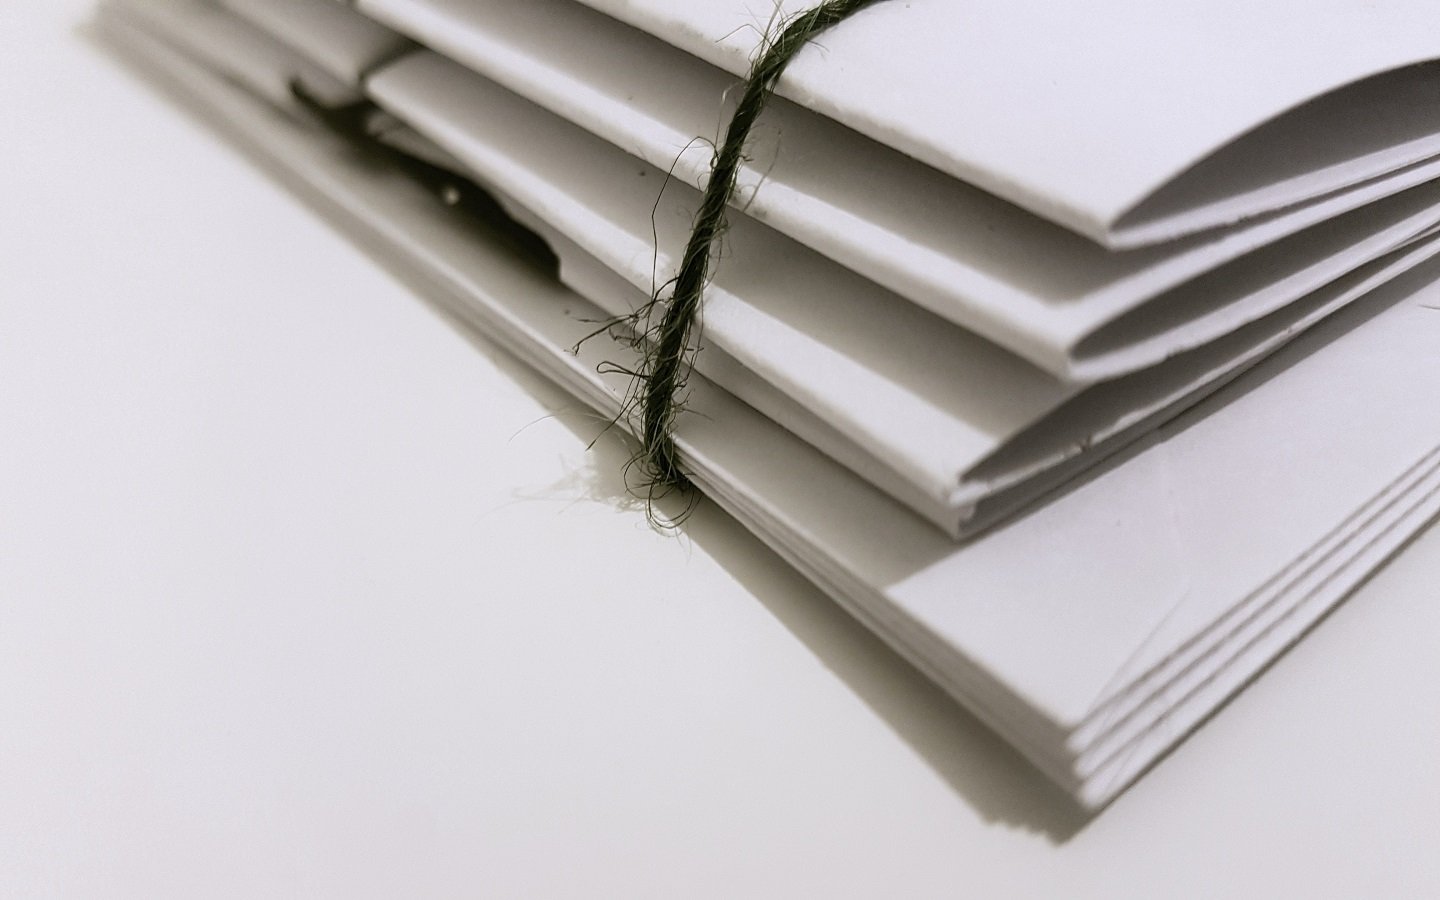 white-paper-folders-with-black-tie